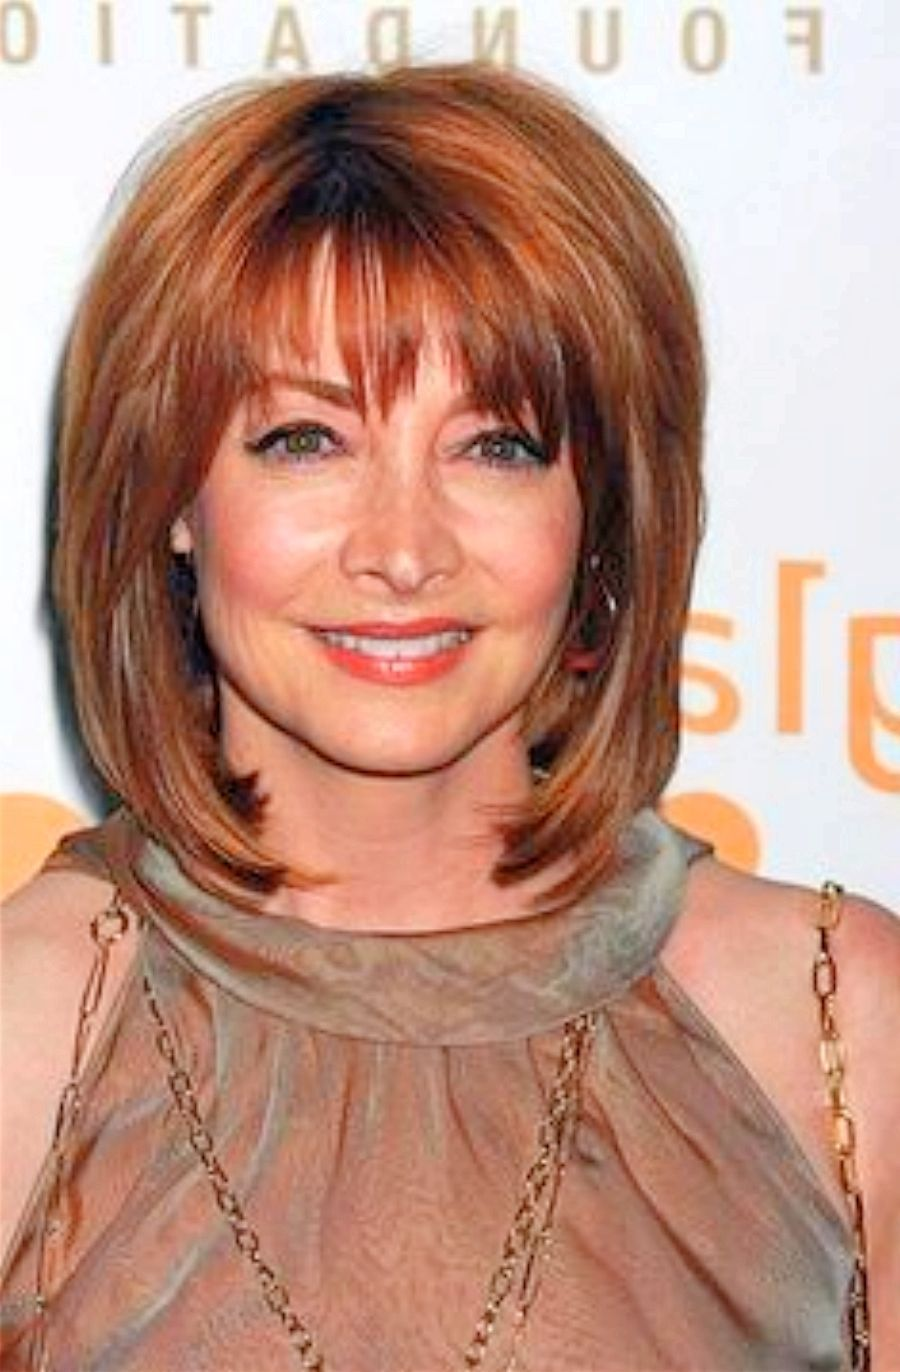 Medium Hairstyles For Women Over 50 Unique Medium Length Hairstyles For Women Over 60  Pinterest  Medium